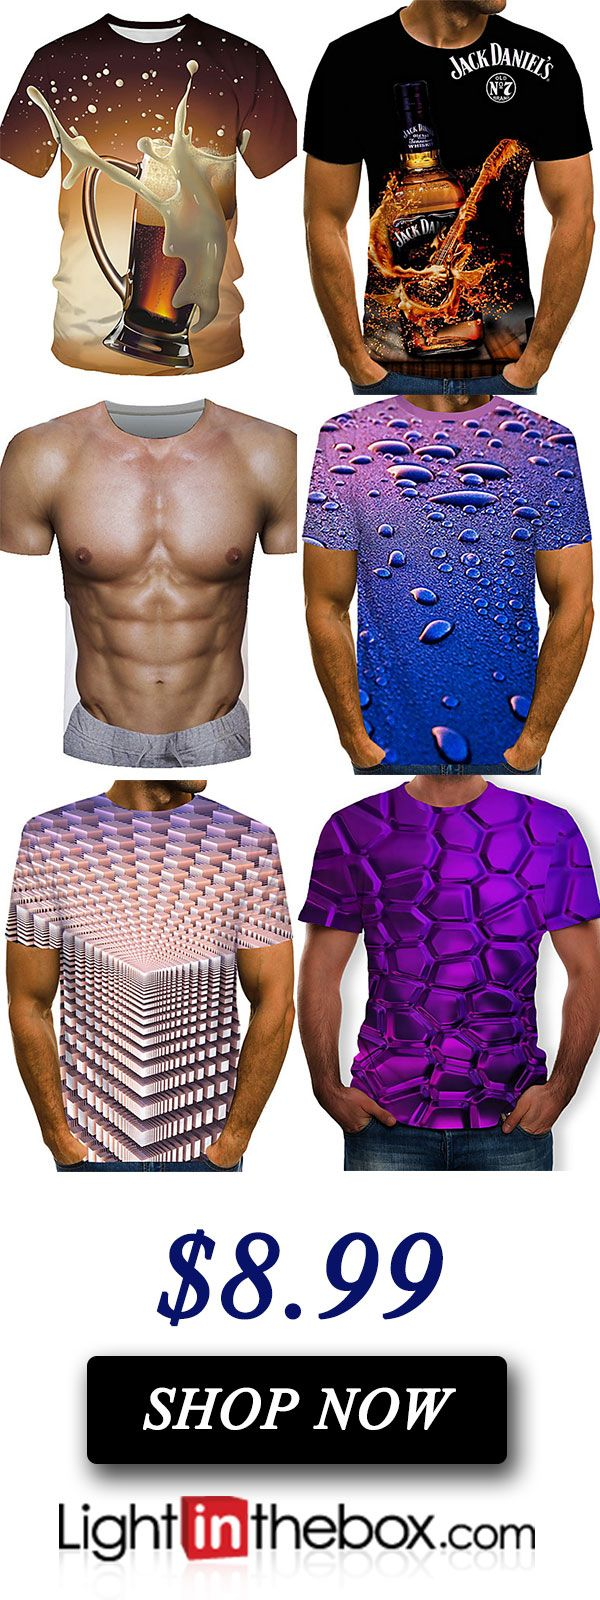 82 Of The Most Creative T Shirt Designs Ever: Men's Weekend Street Chic Plus Size T-shirt - 3D